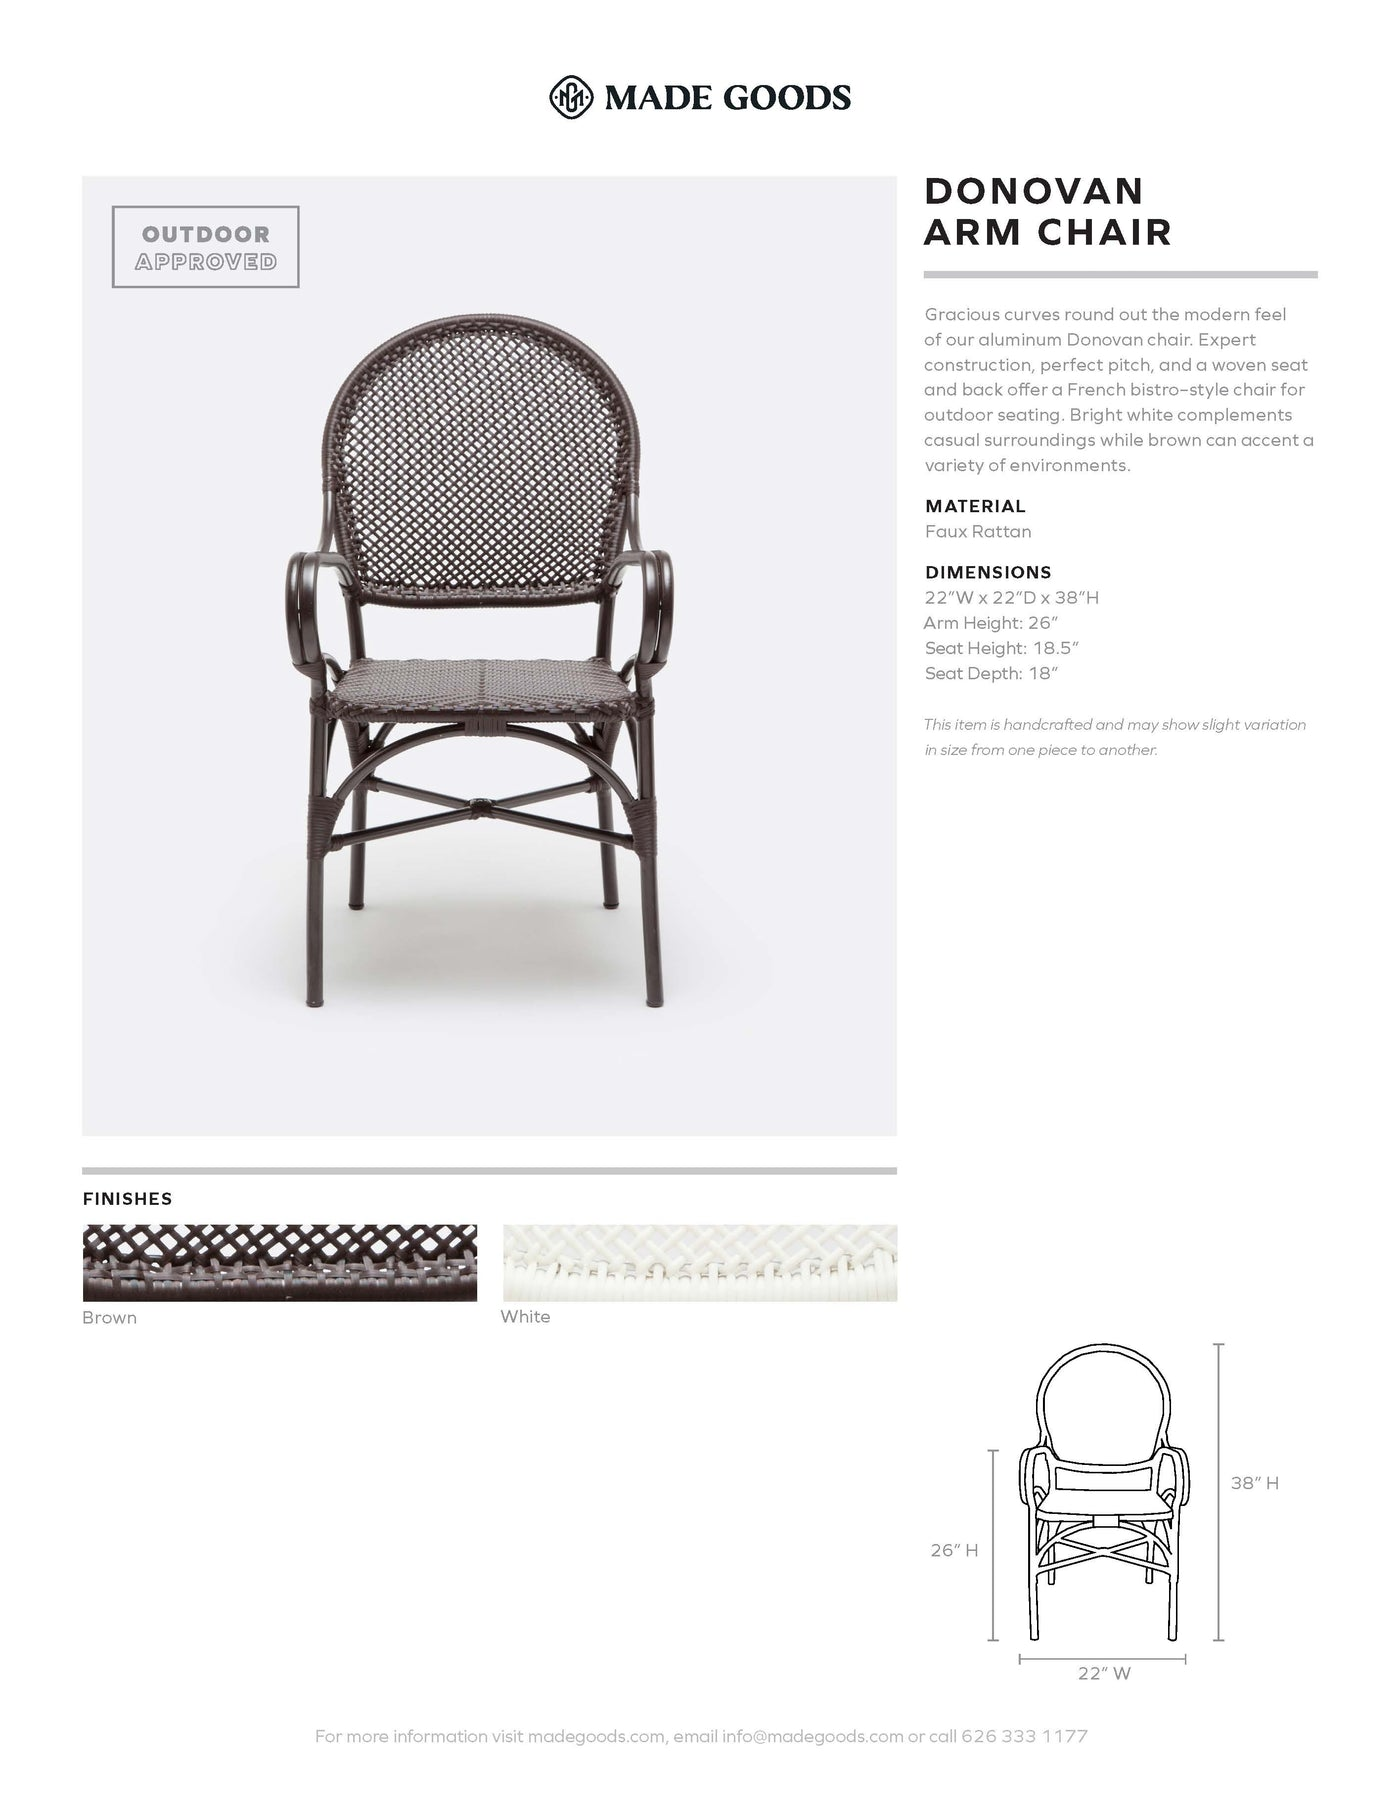 Made Goods Donovan Arm Chair Tearsheet